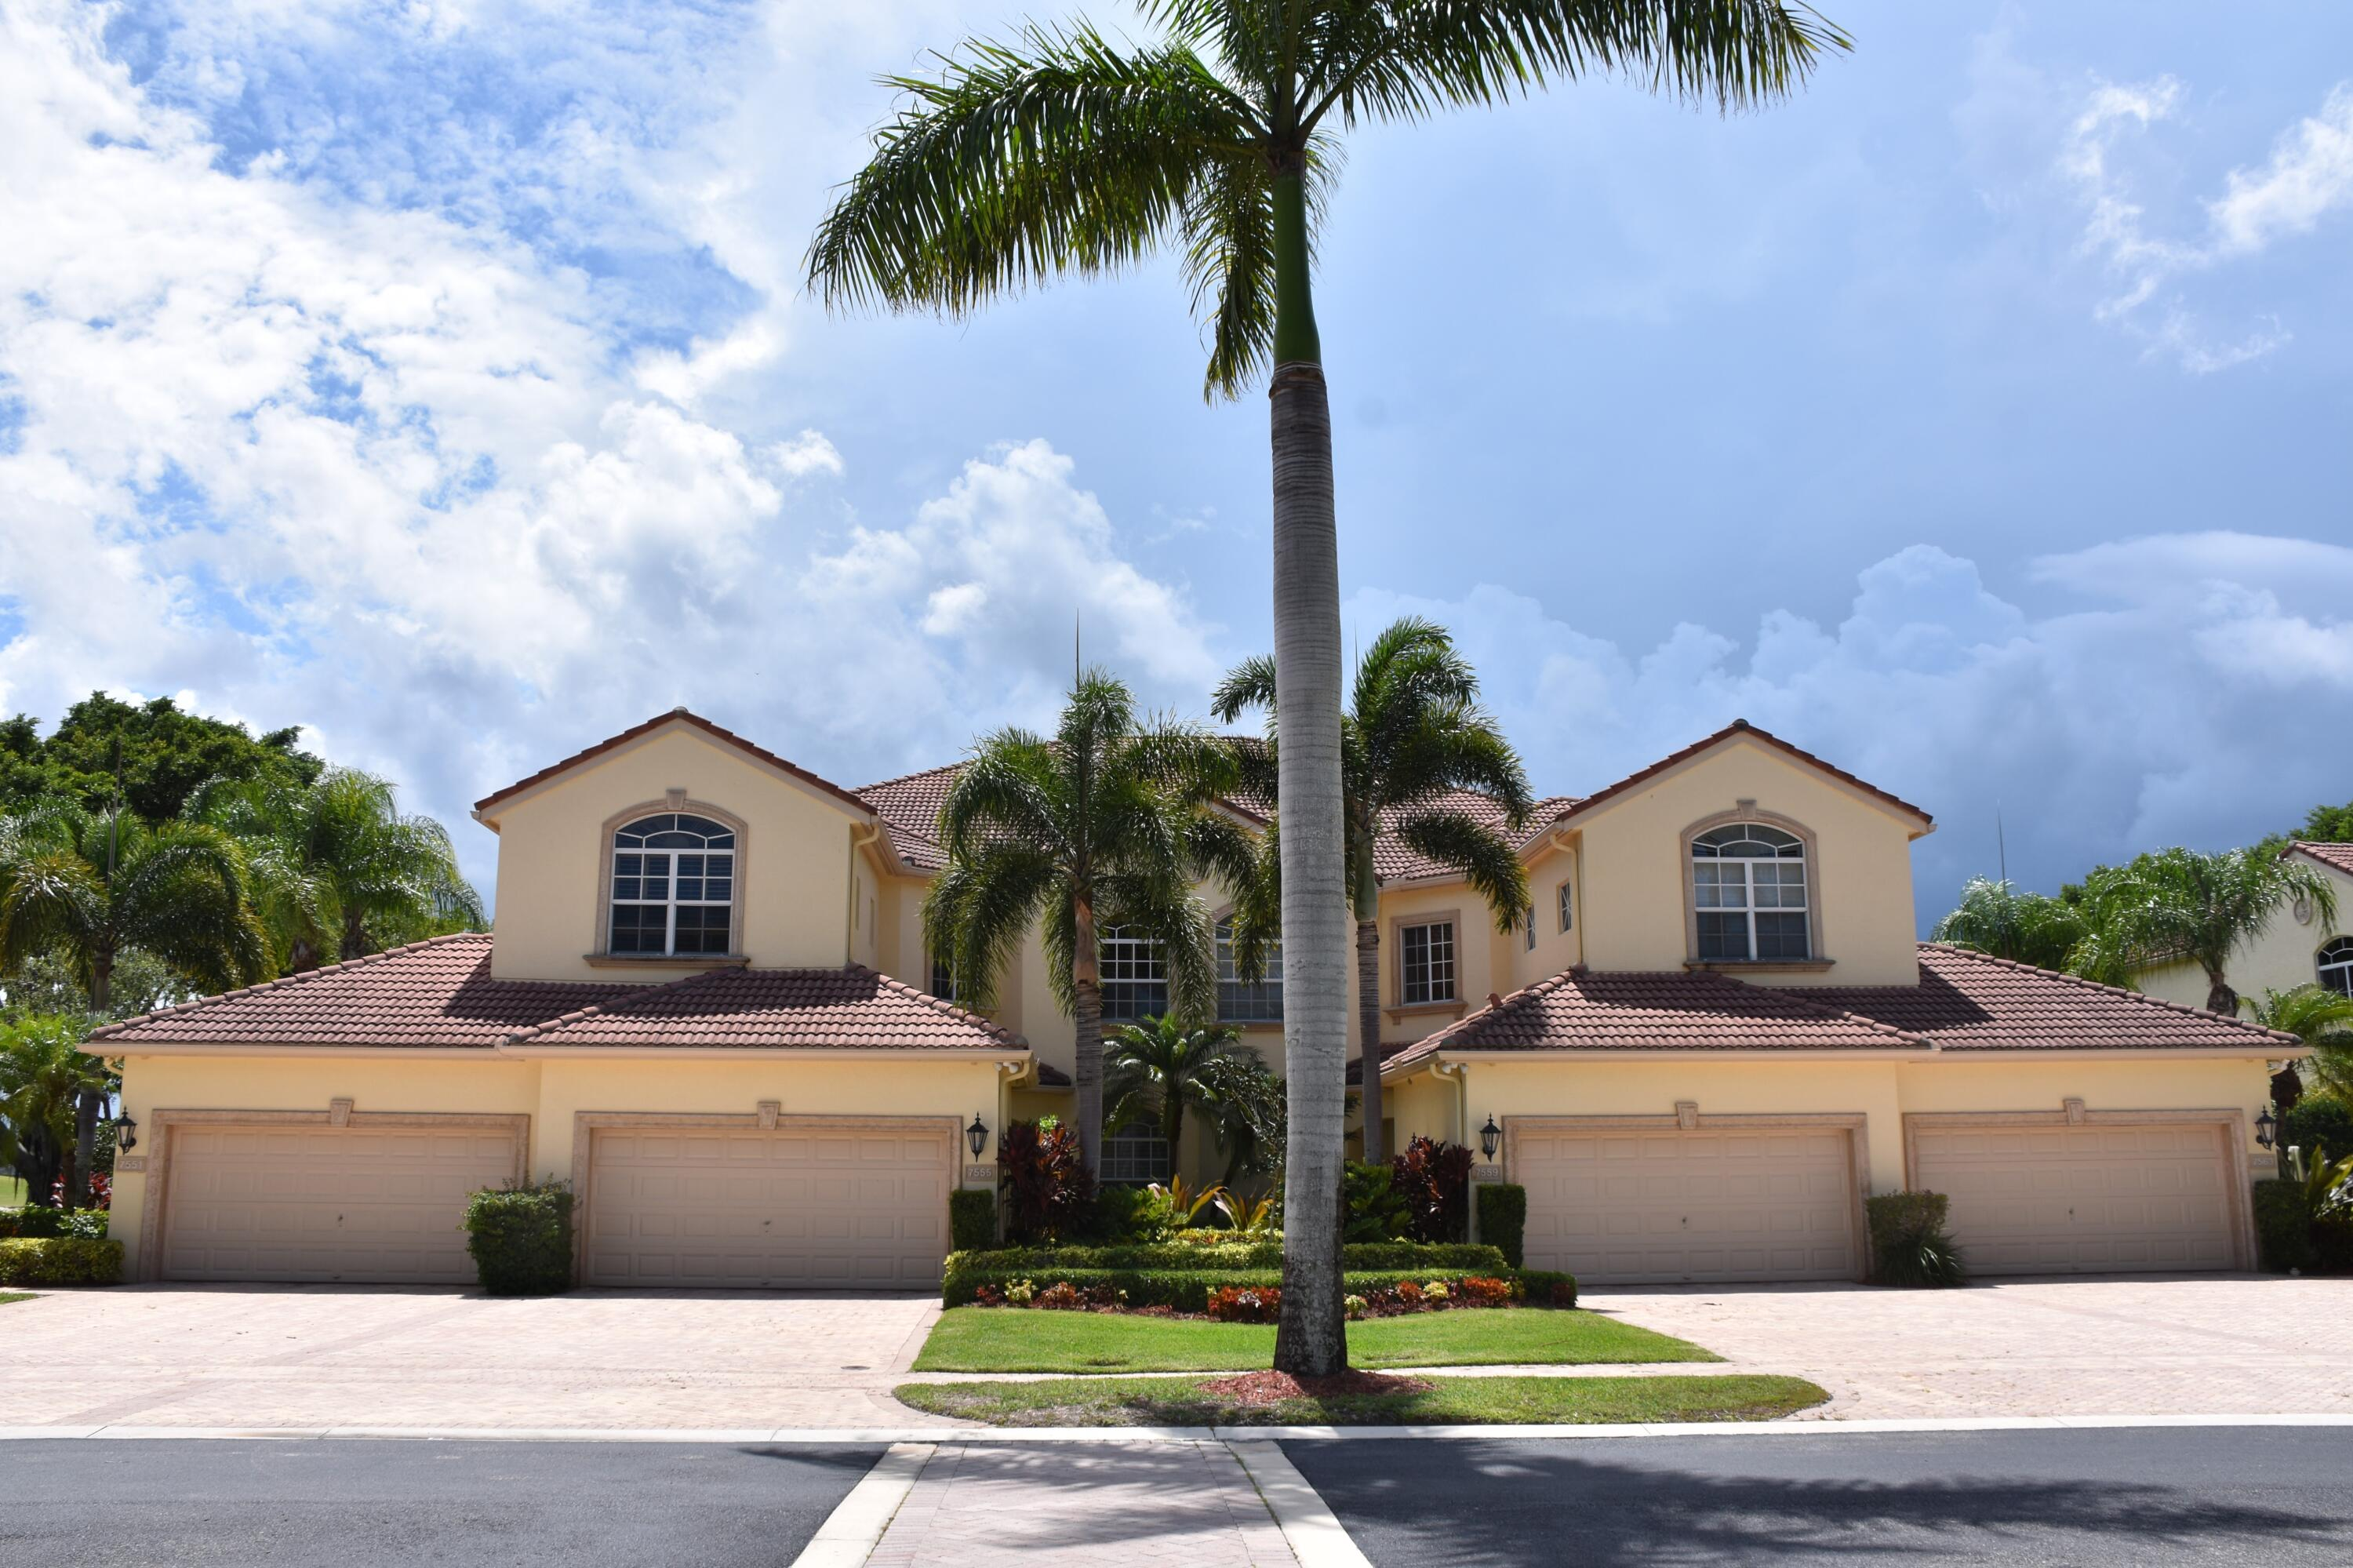 Home for sale in Vintage Properties West Palm Beach Florida